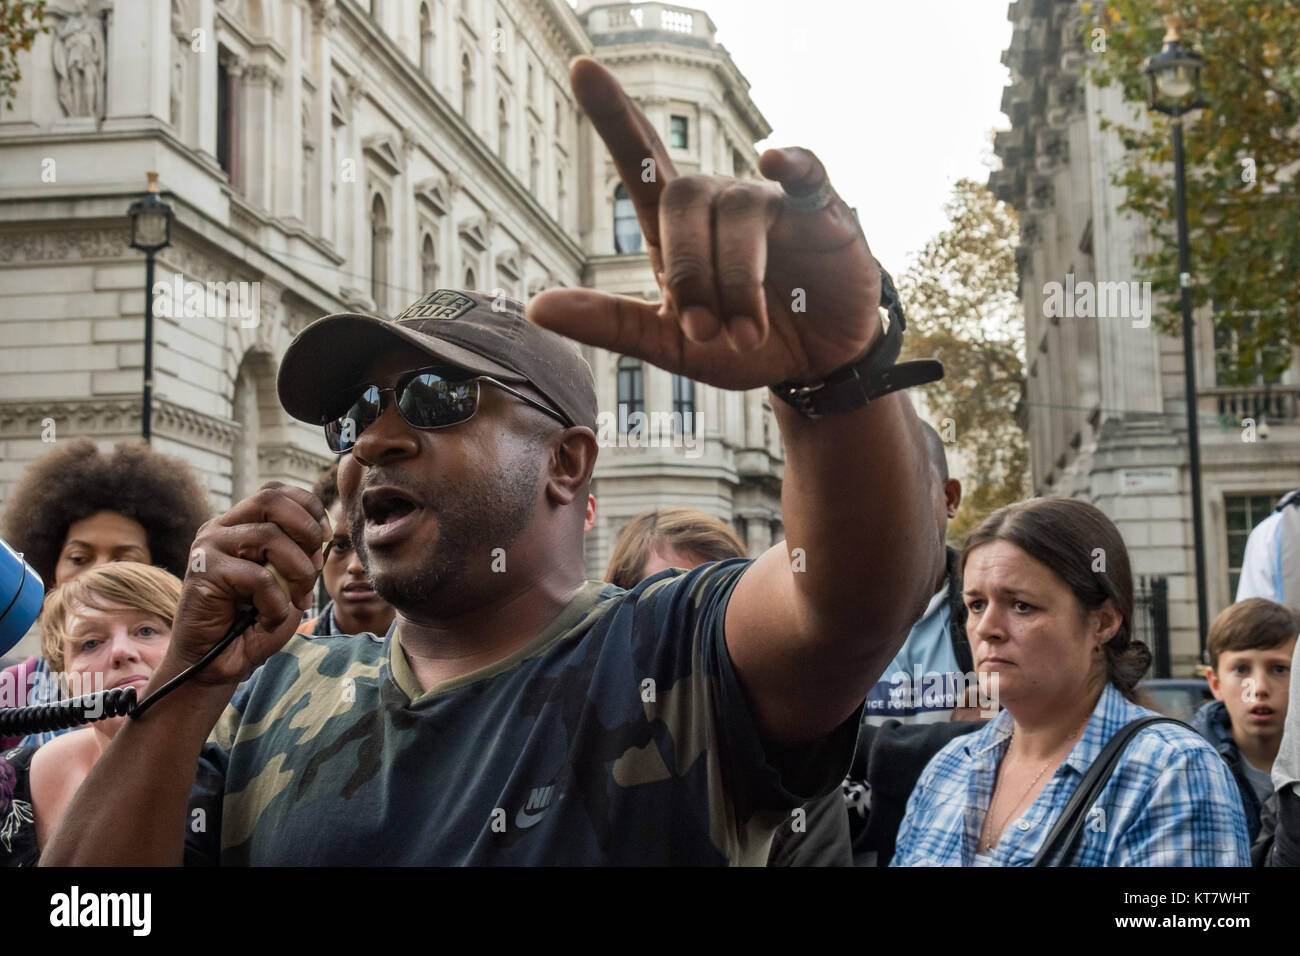 Shaun Hall, the brother of Mark Duggan, shot by police in 2011, speaks at the rally by United Friends and Family - Stock Image